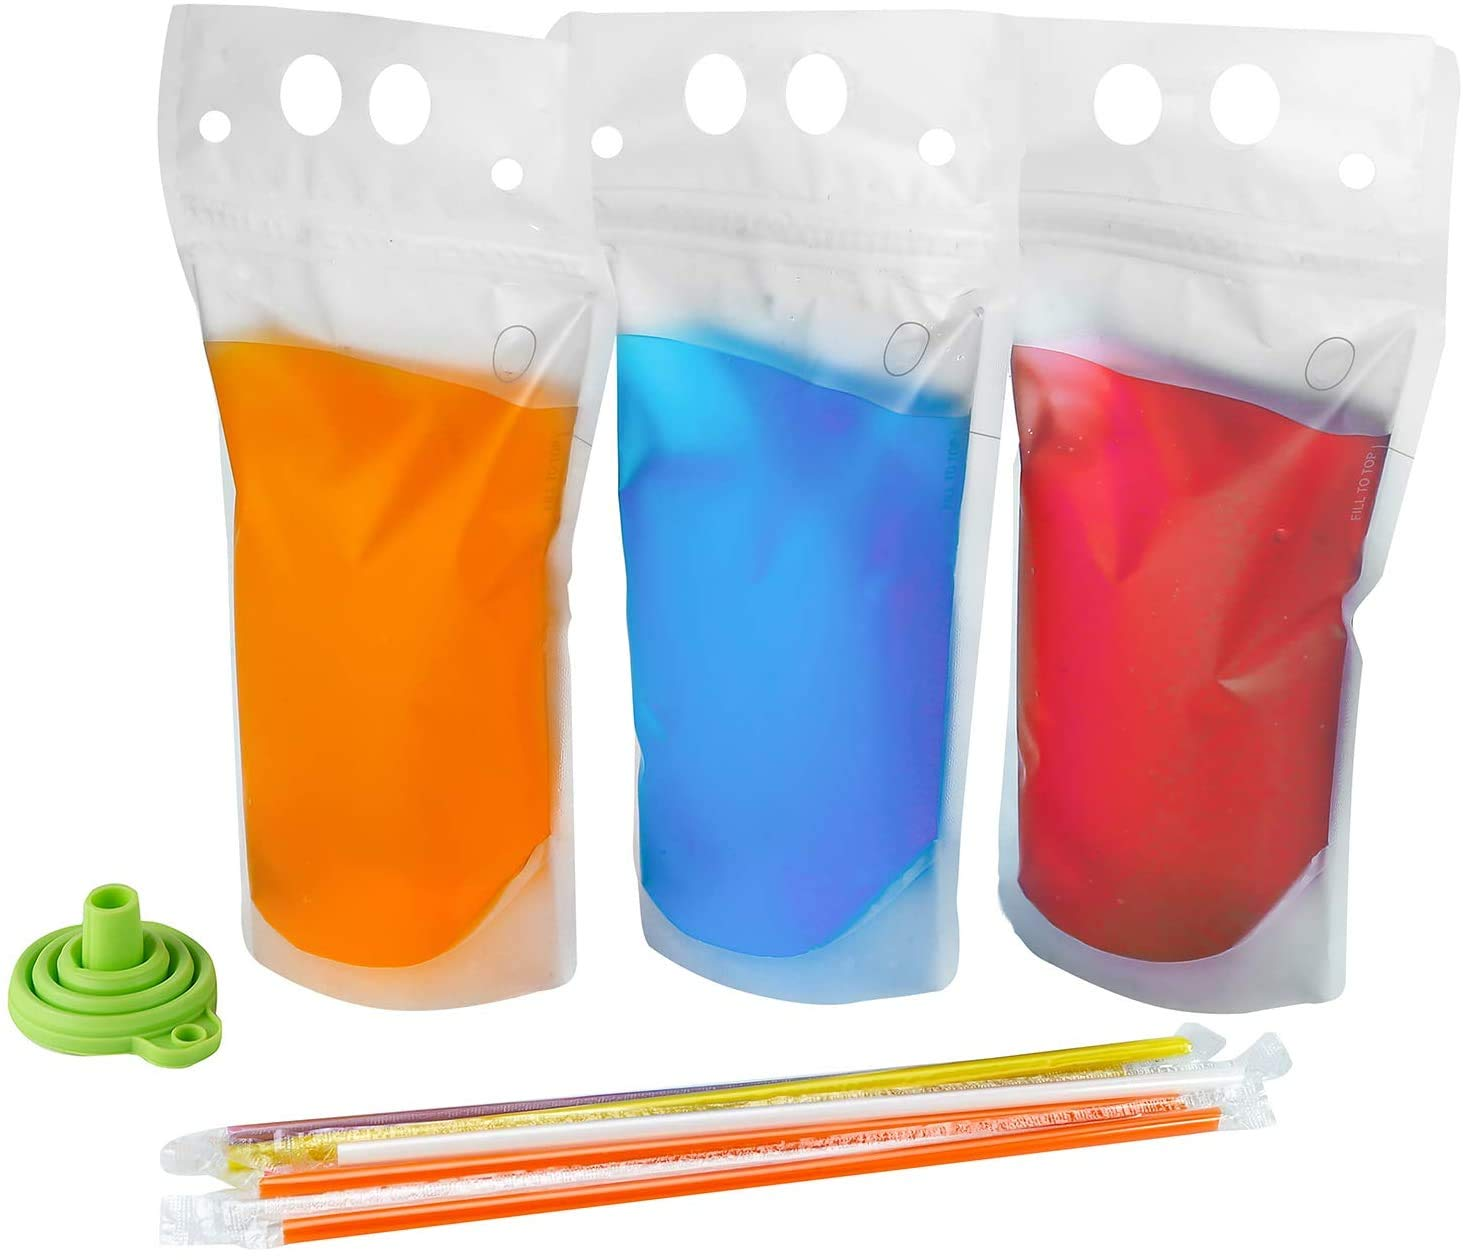 200PCS Drink Pouches with Straw Smoothie Bags Juice Pouches with 200 Drink Straws, Heavy Duty Hand-Held Translucent Reclosable Ice Drink Pouches Bag by C CRYSTAL LEMON